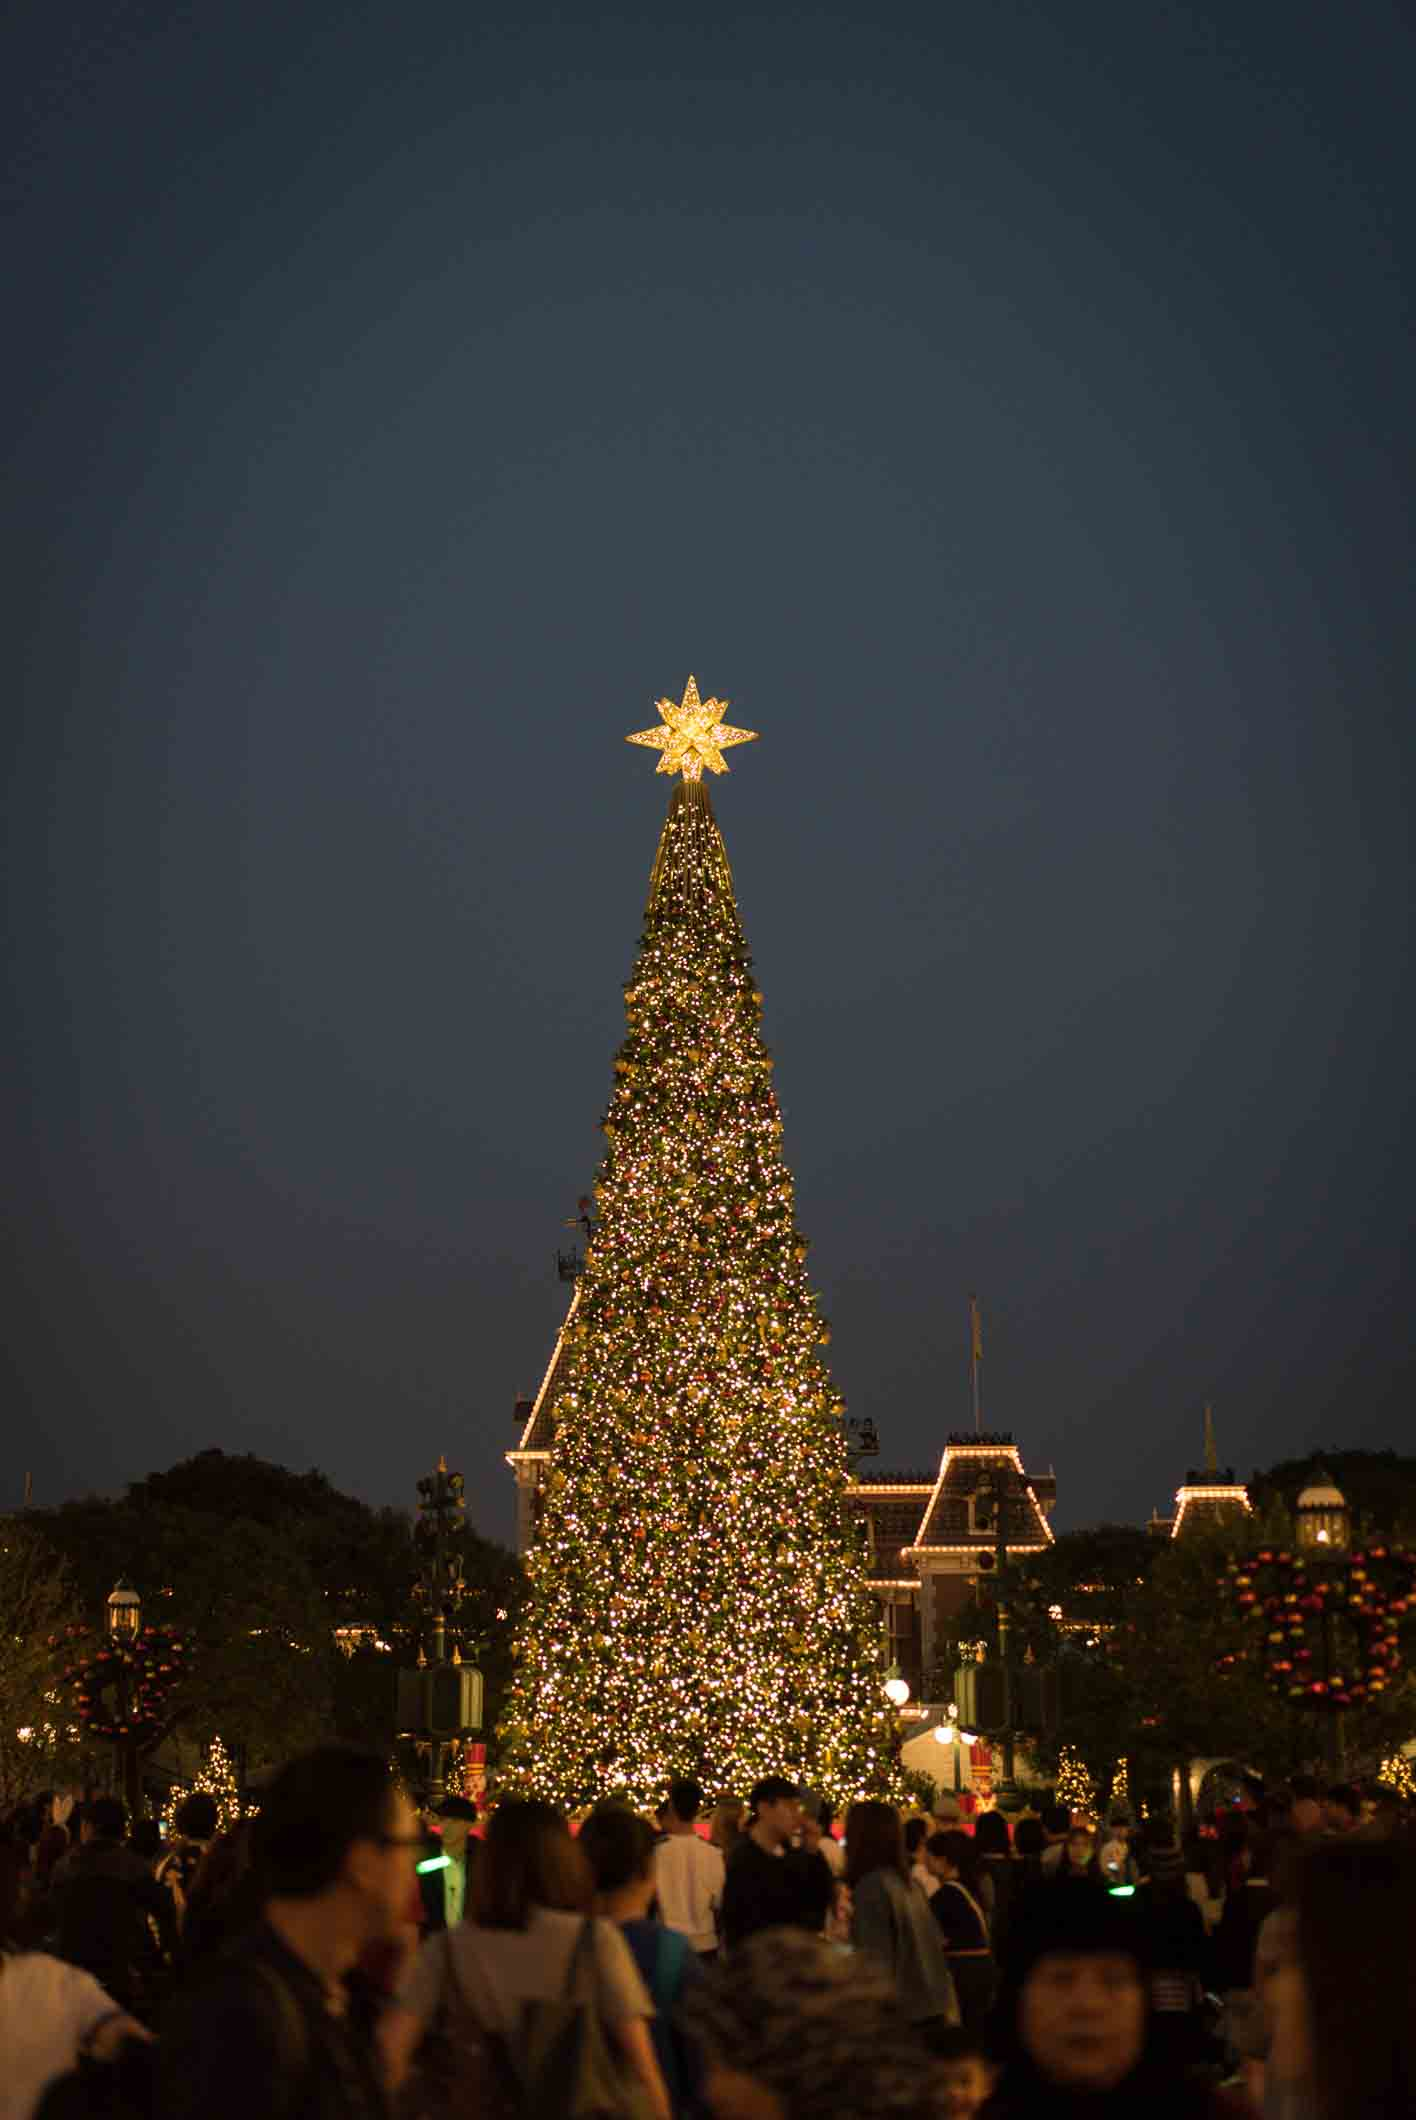 Christmas In Disneyland Hong Kong.Hong Kong Disneyland In The Run Up To Christmas Bluebalu